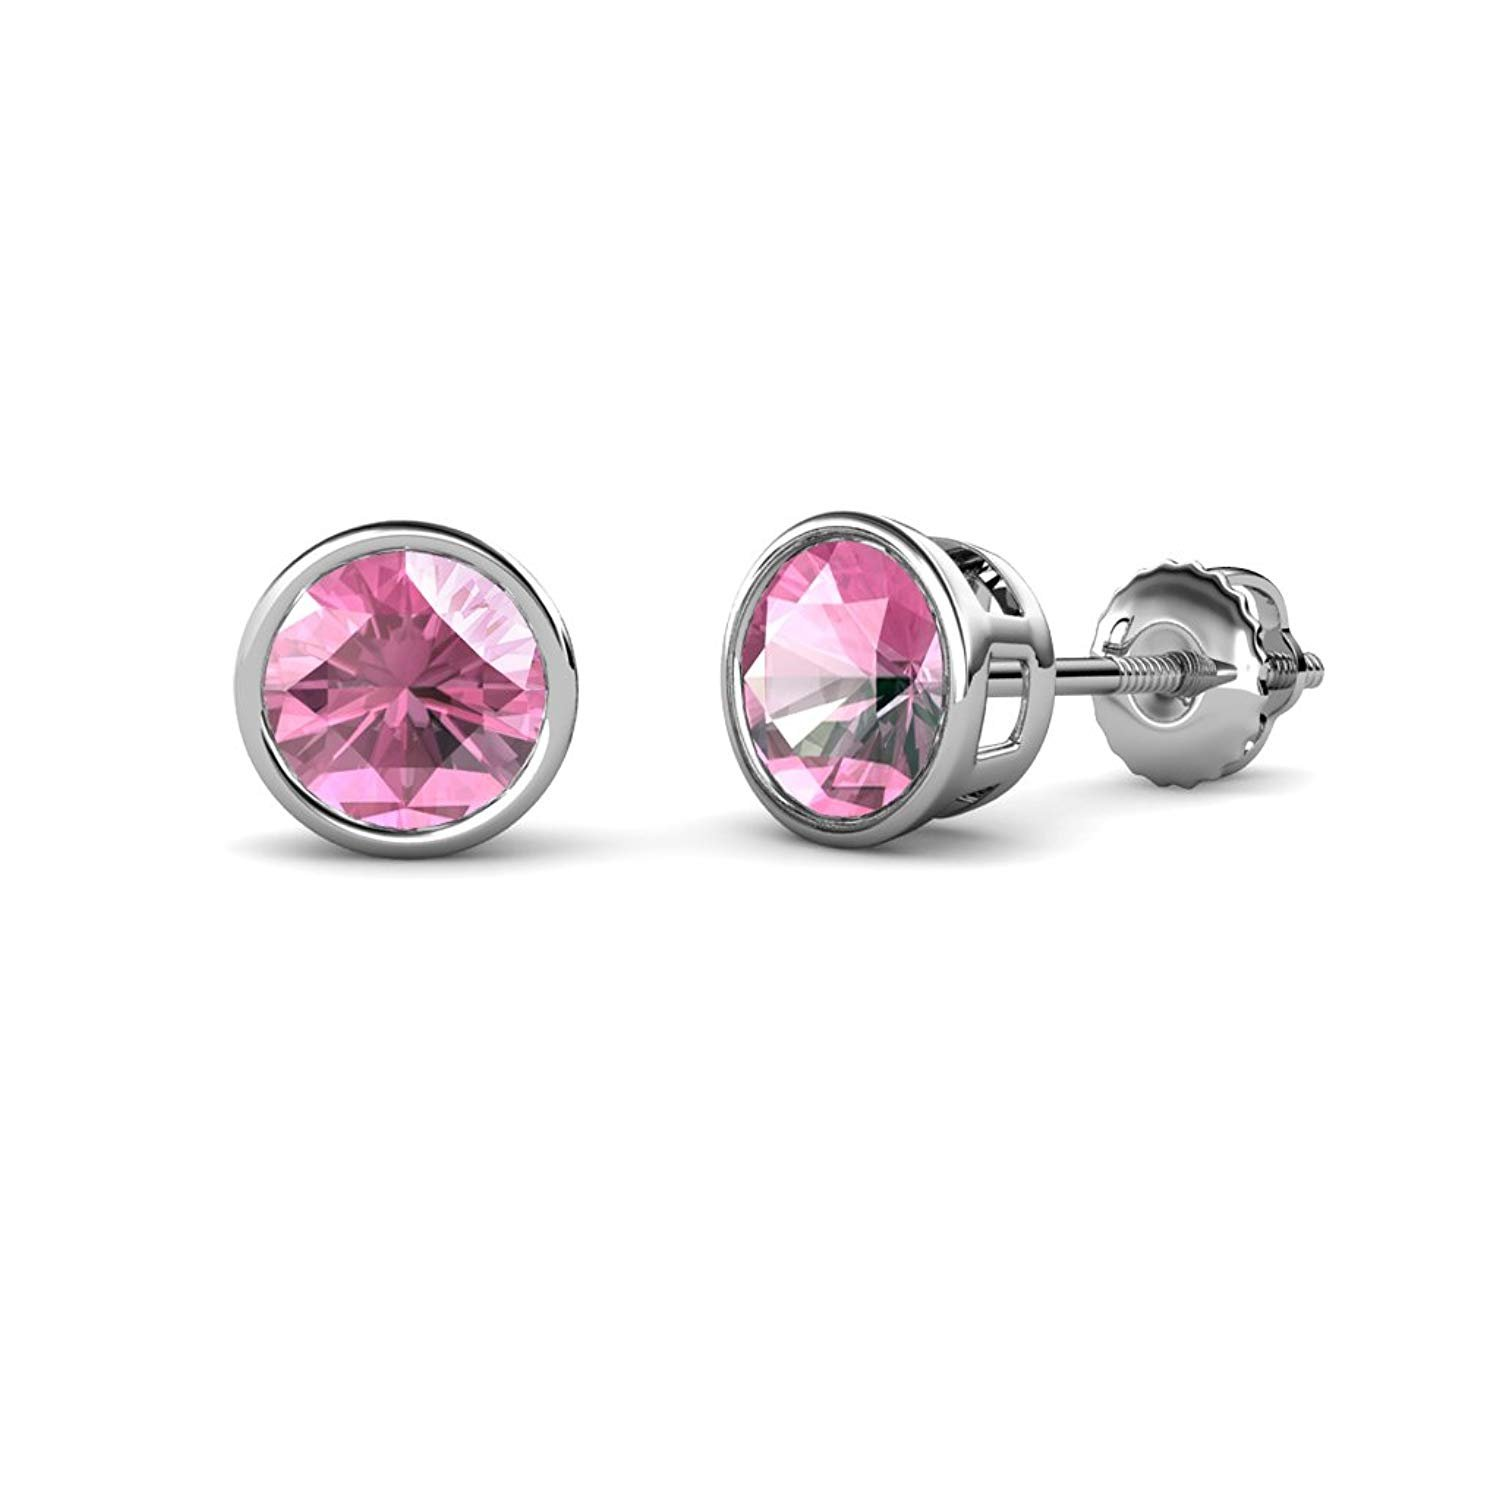 Pink Tourmaline Bezel Set Solitaire Stud Earrings 1.74 cttw in 14K White Gold by TriJewels